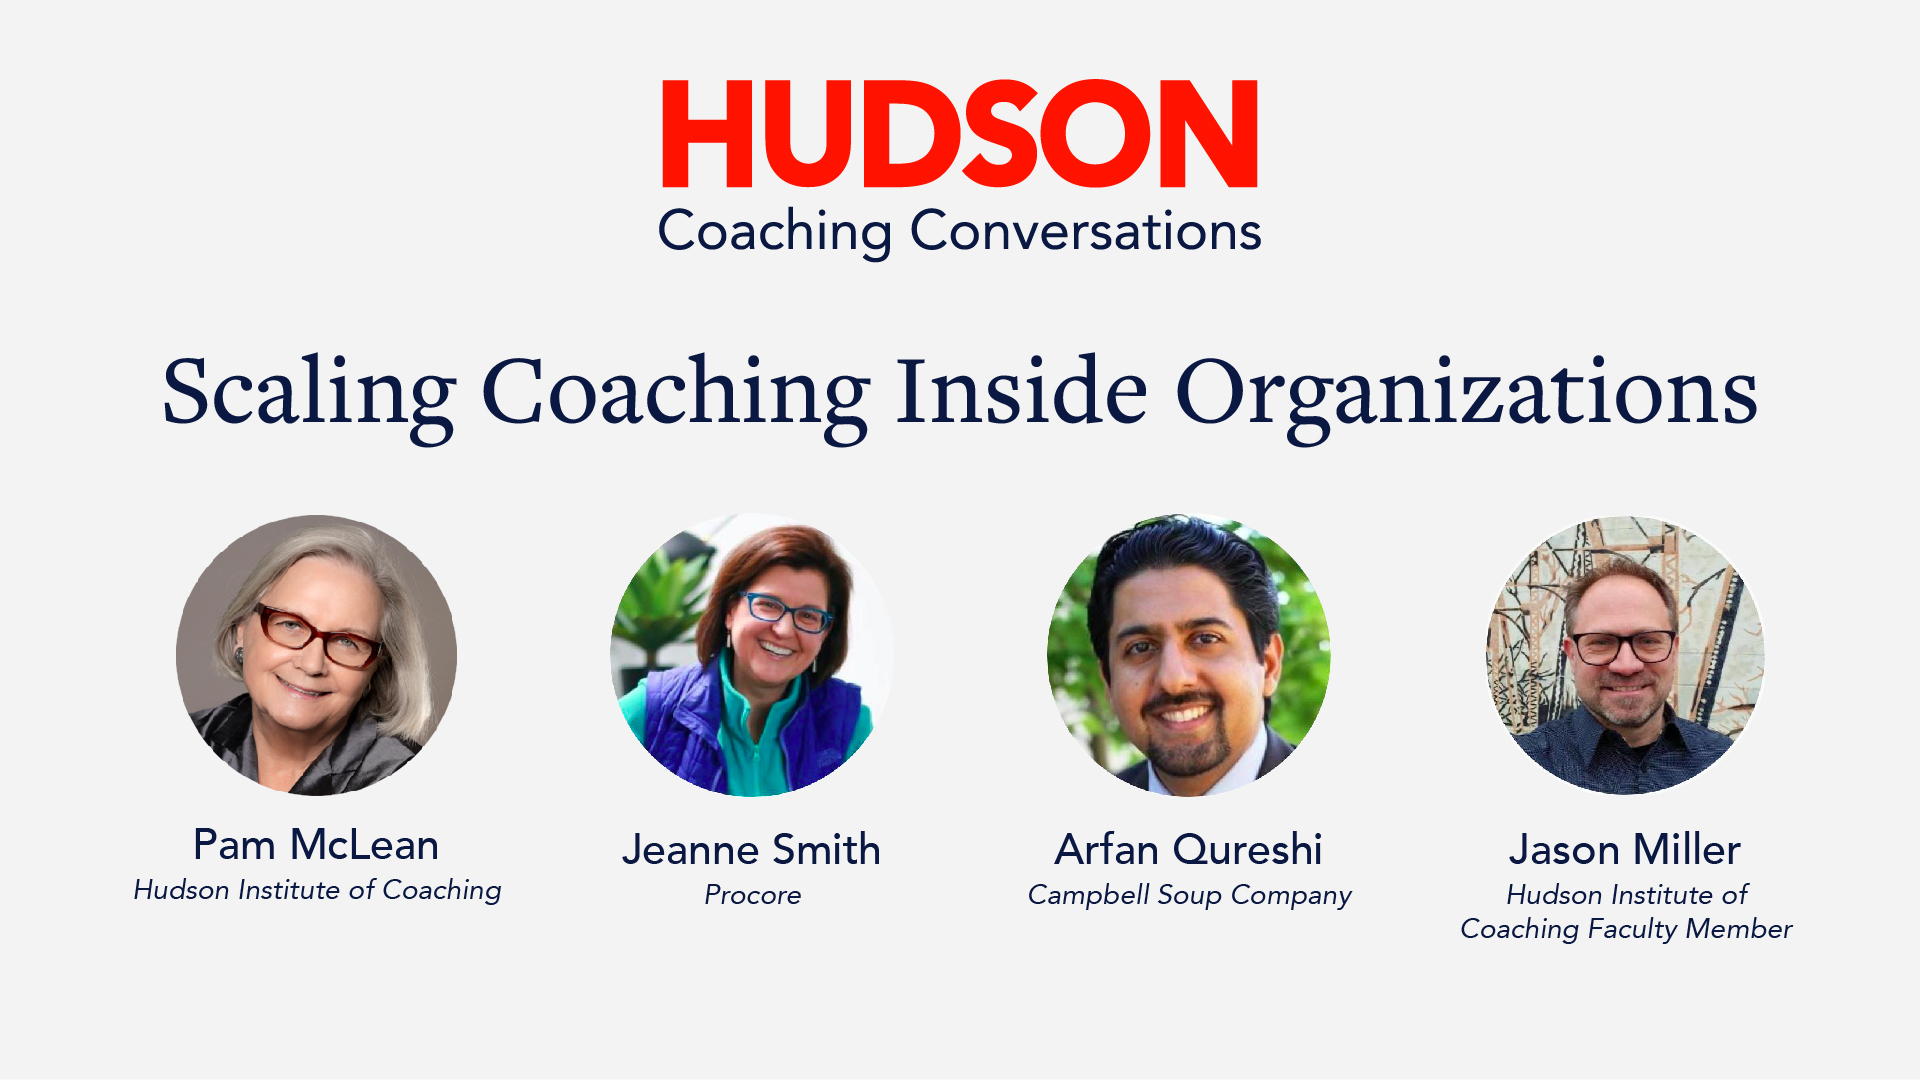 [Video] Hudson Coaching Conversations: Scaling Coaching in Organizations